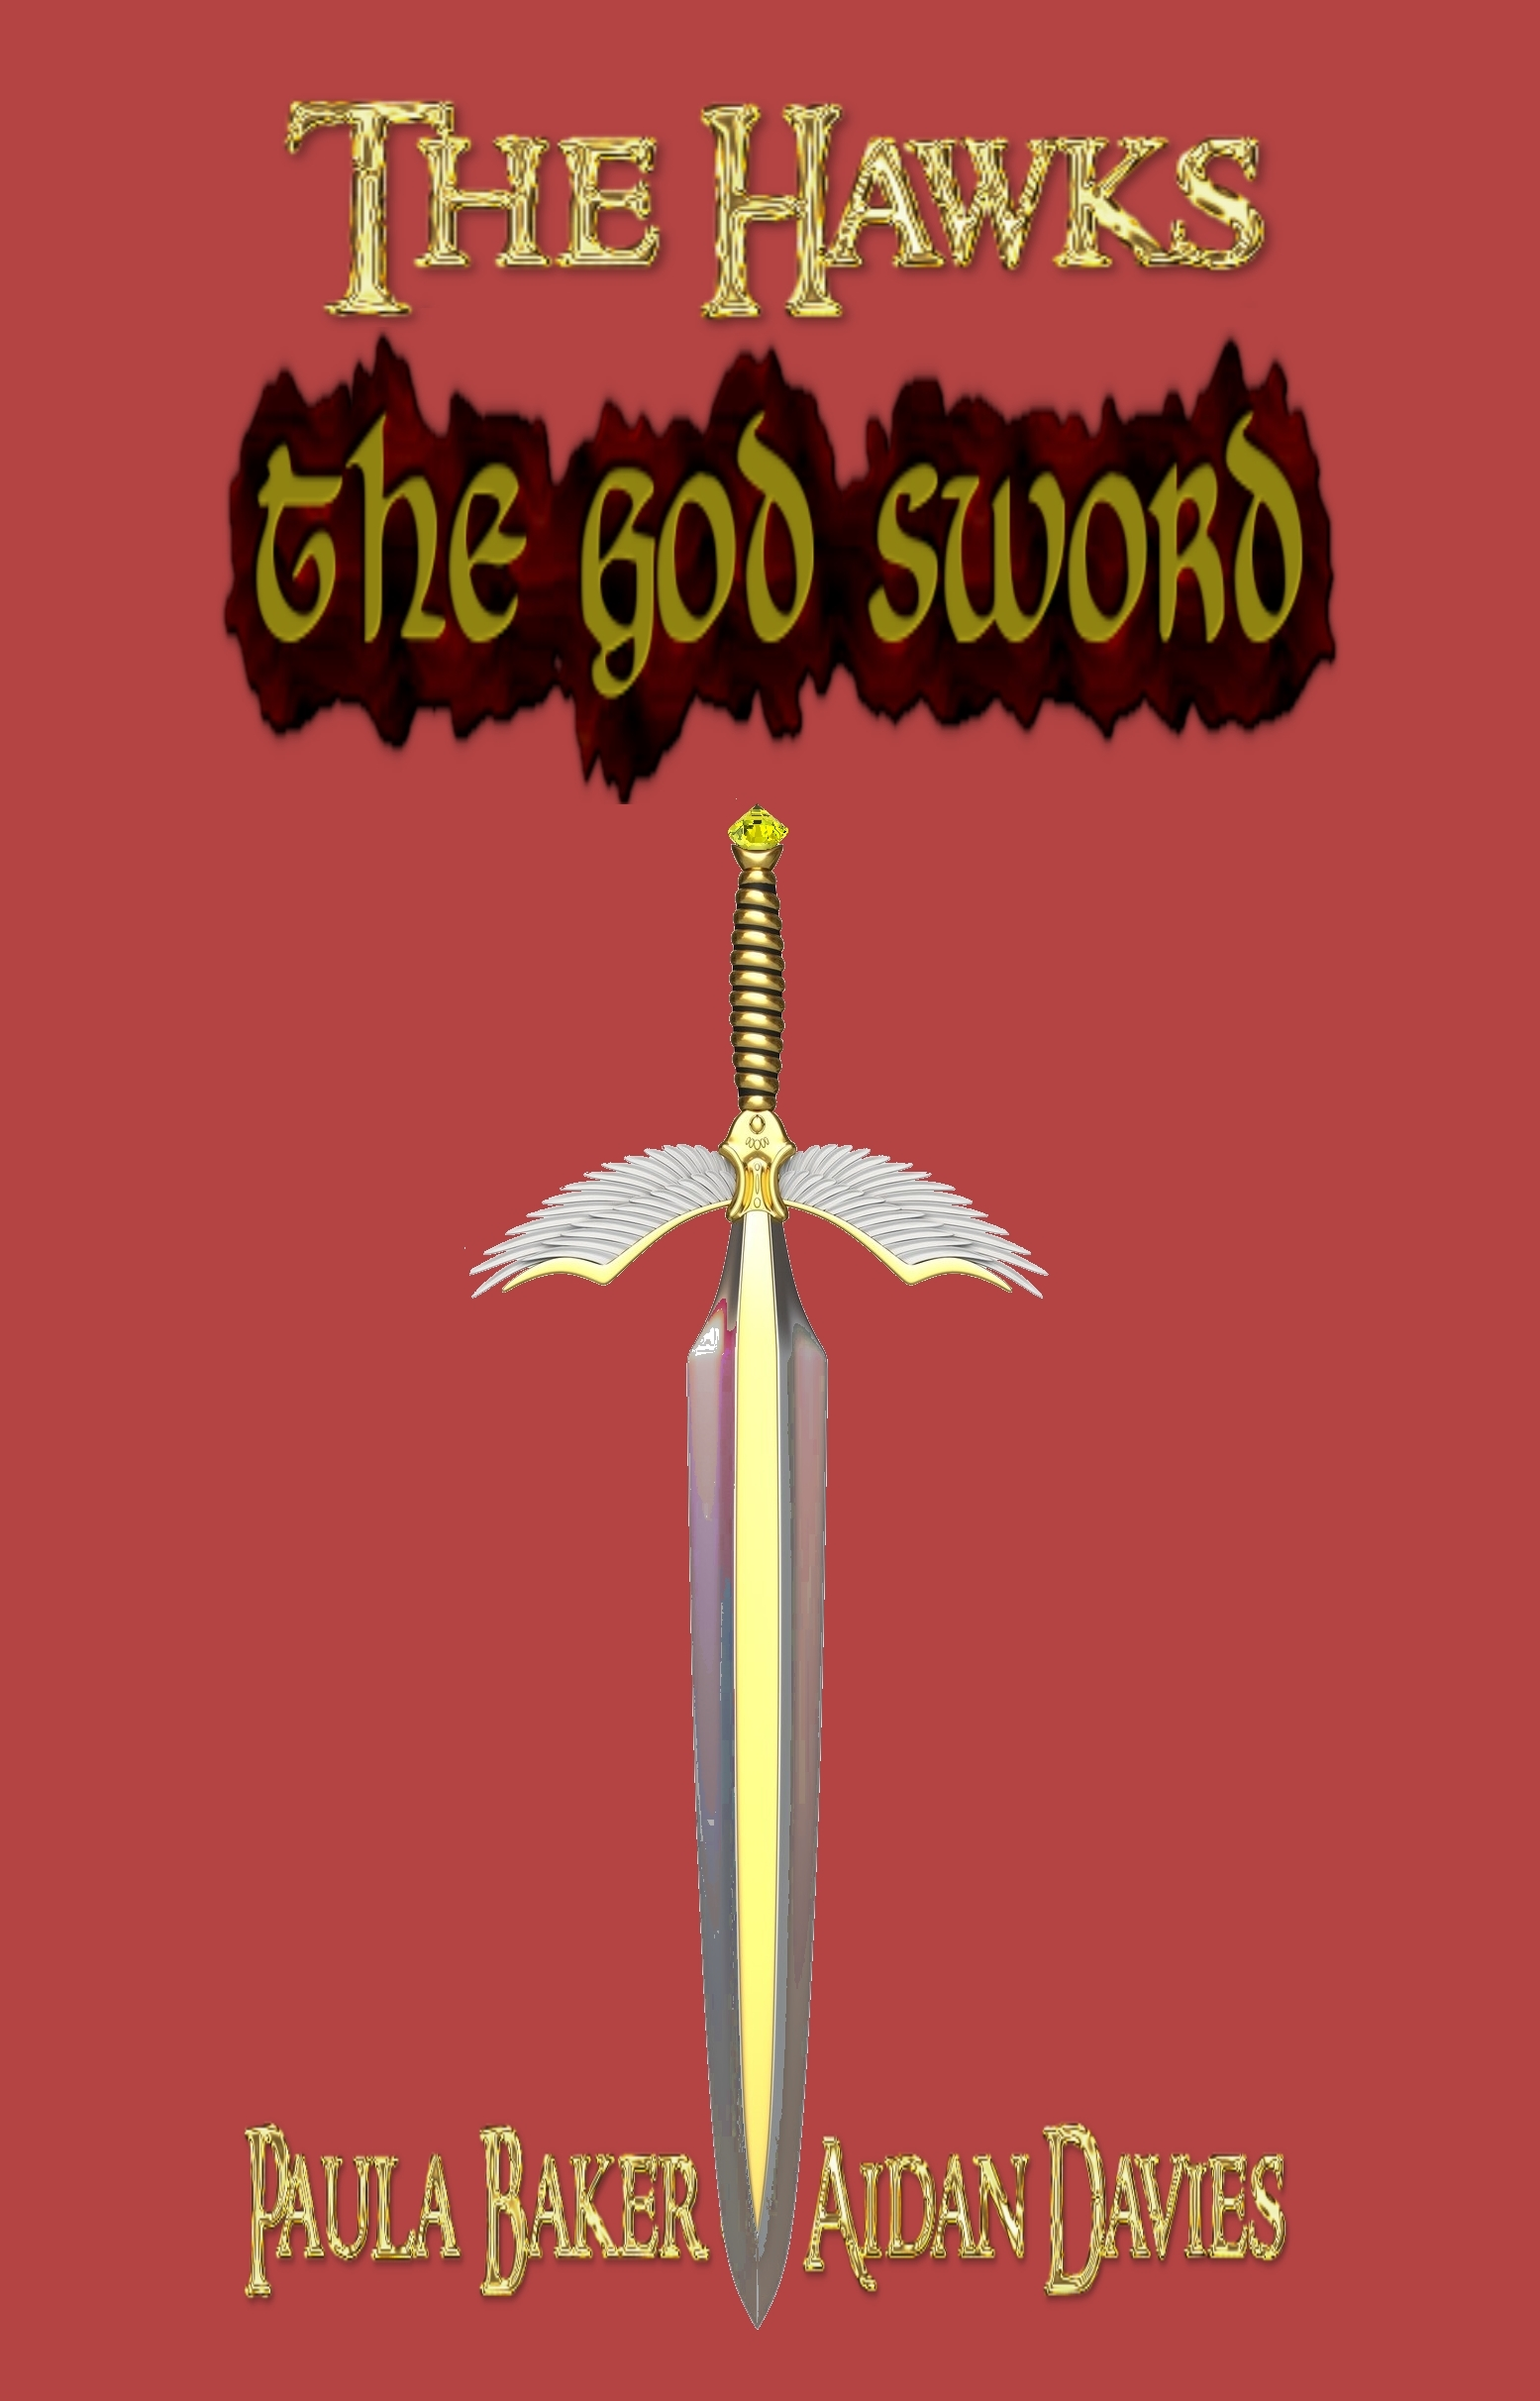 The God Sword: The Hawks: Book Two (Volume 2)